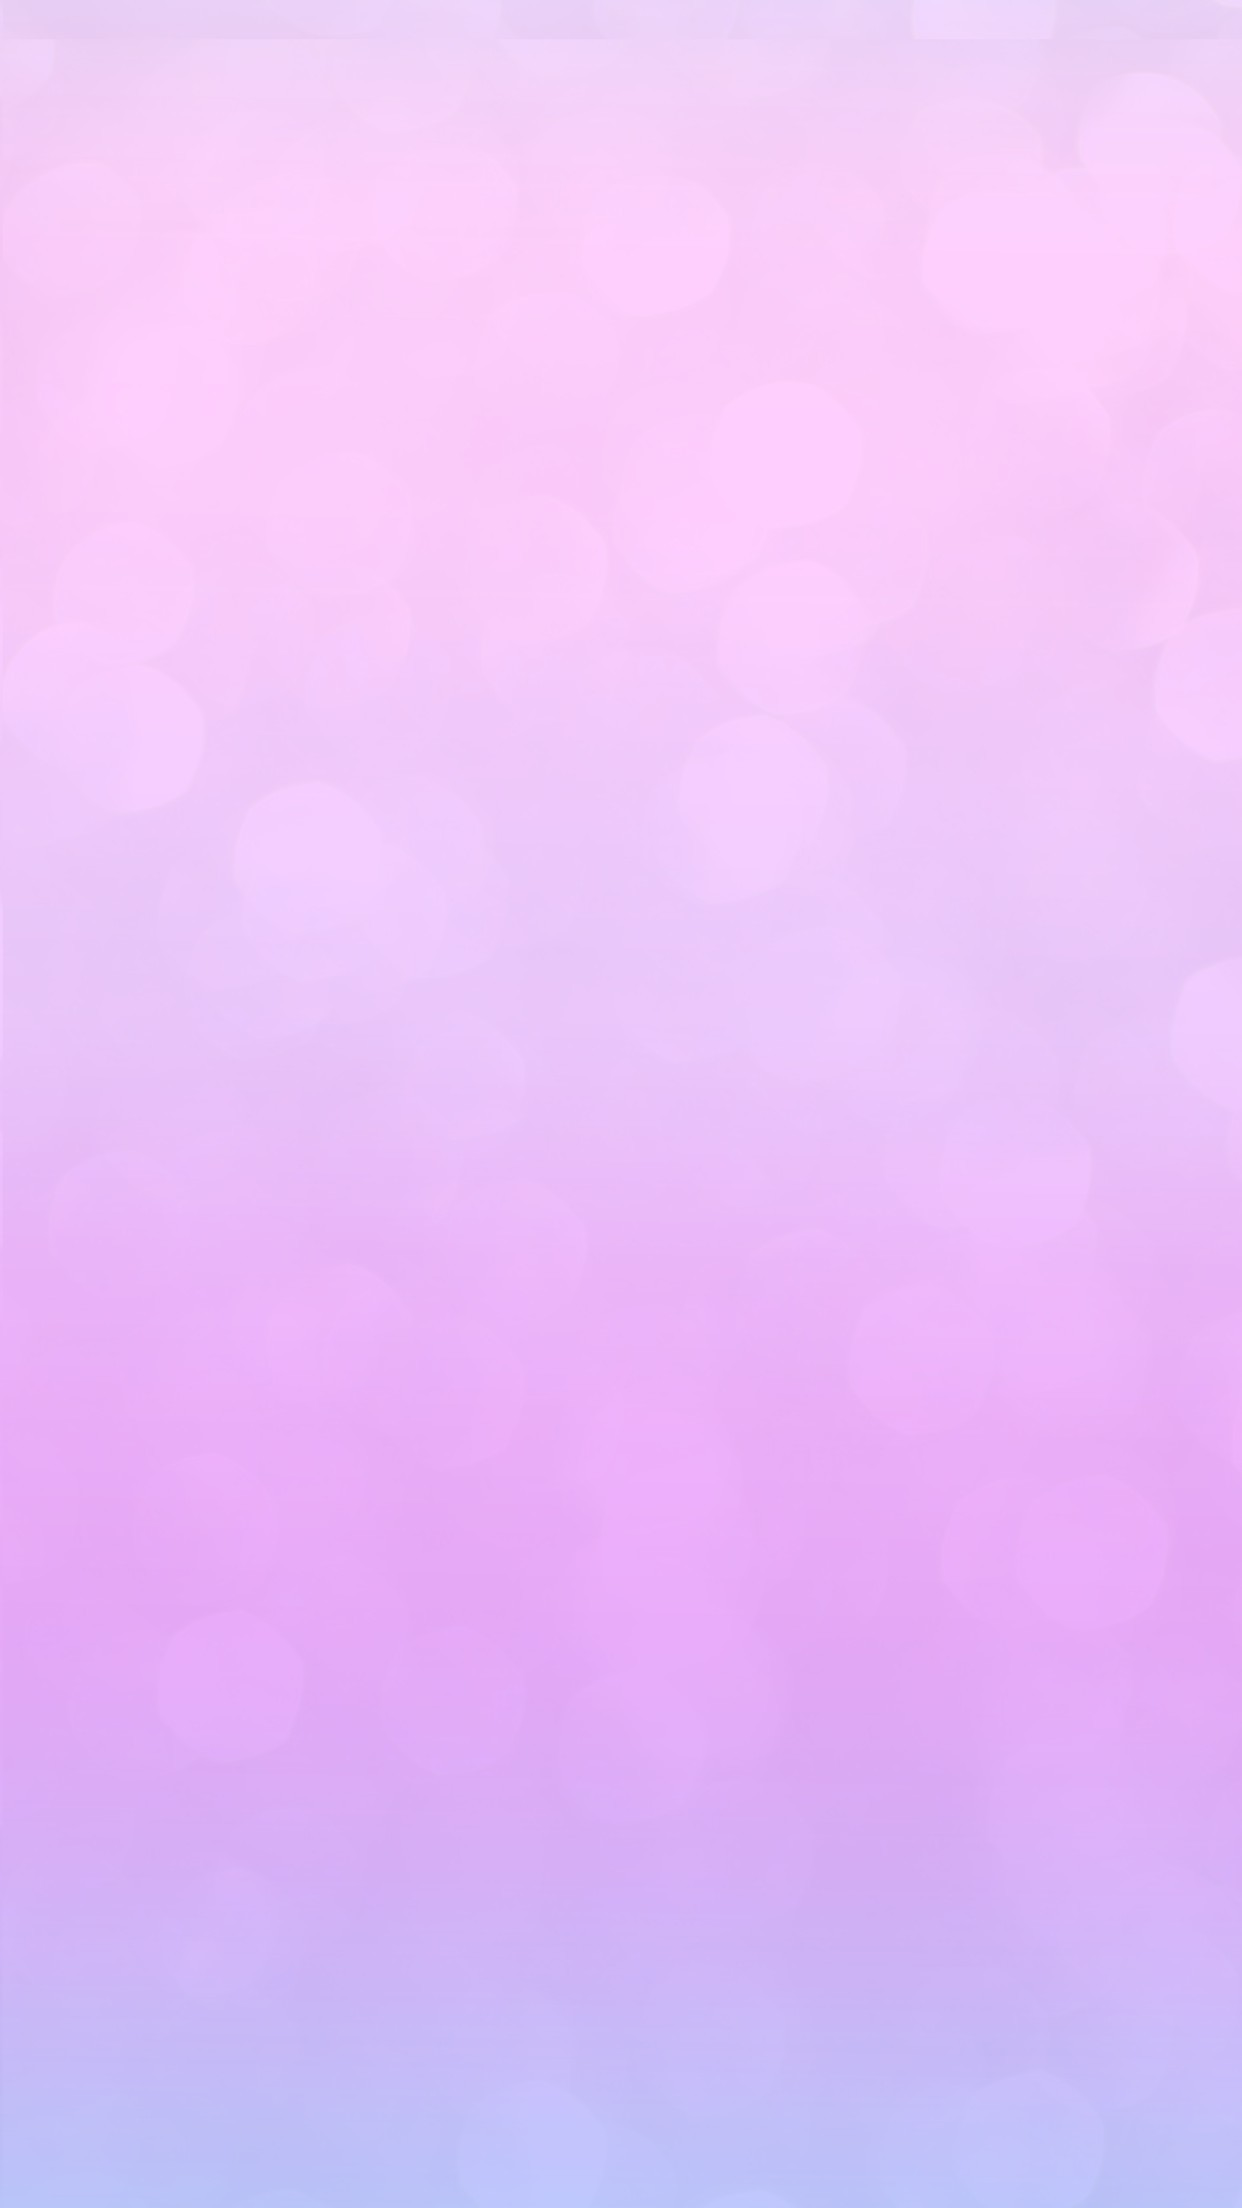 Pink Ombre Wallpaper 60 images 1242x2208